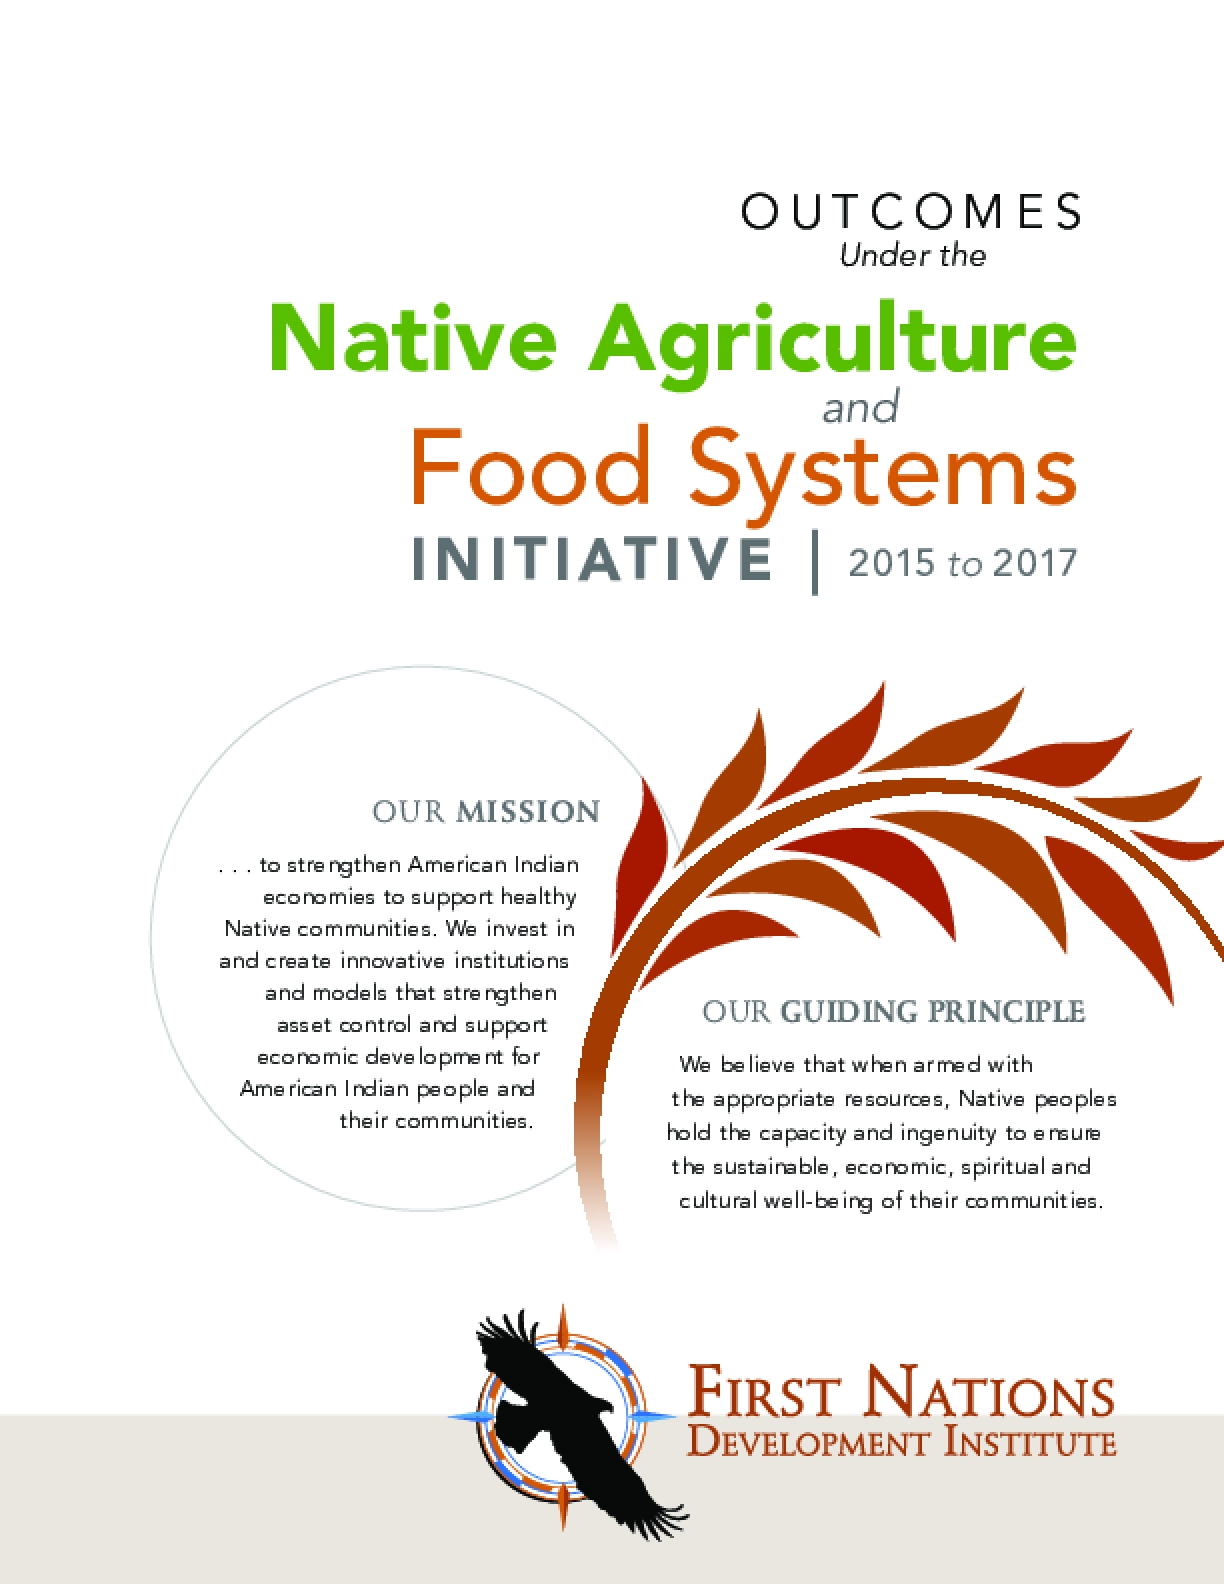 Outcomes Under the Native Agriculture and Food Systems Initiative